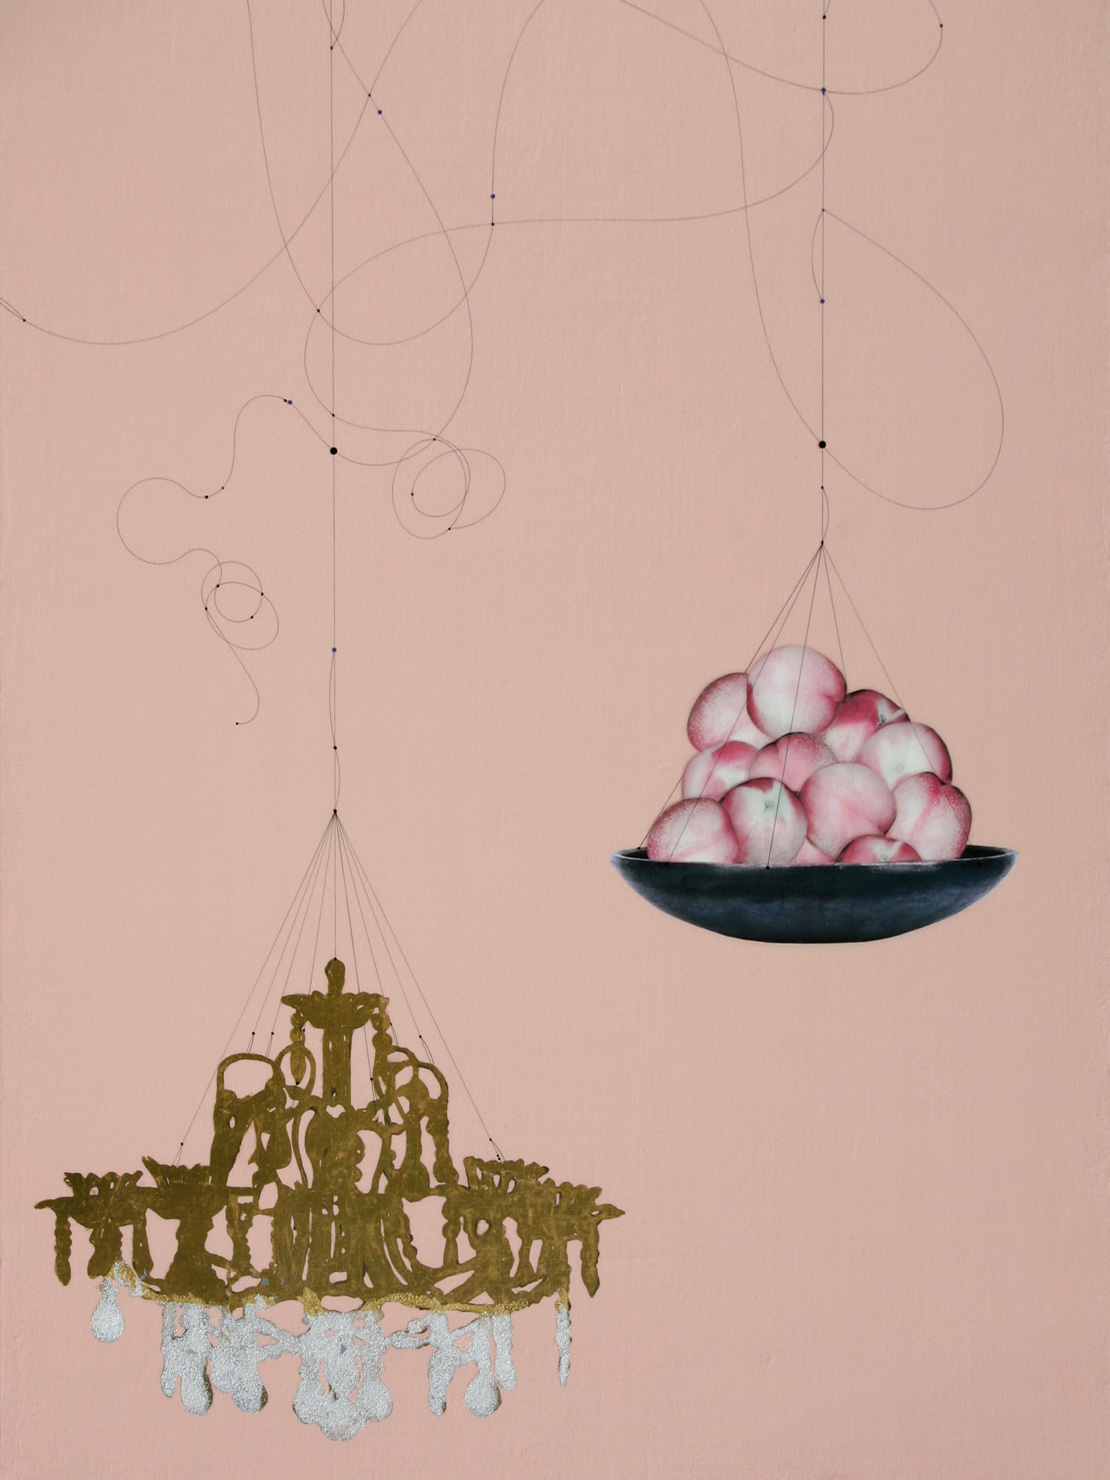 Peach and Chandelier #121